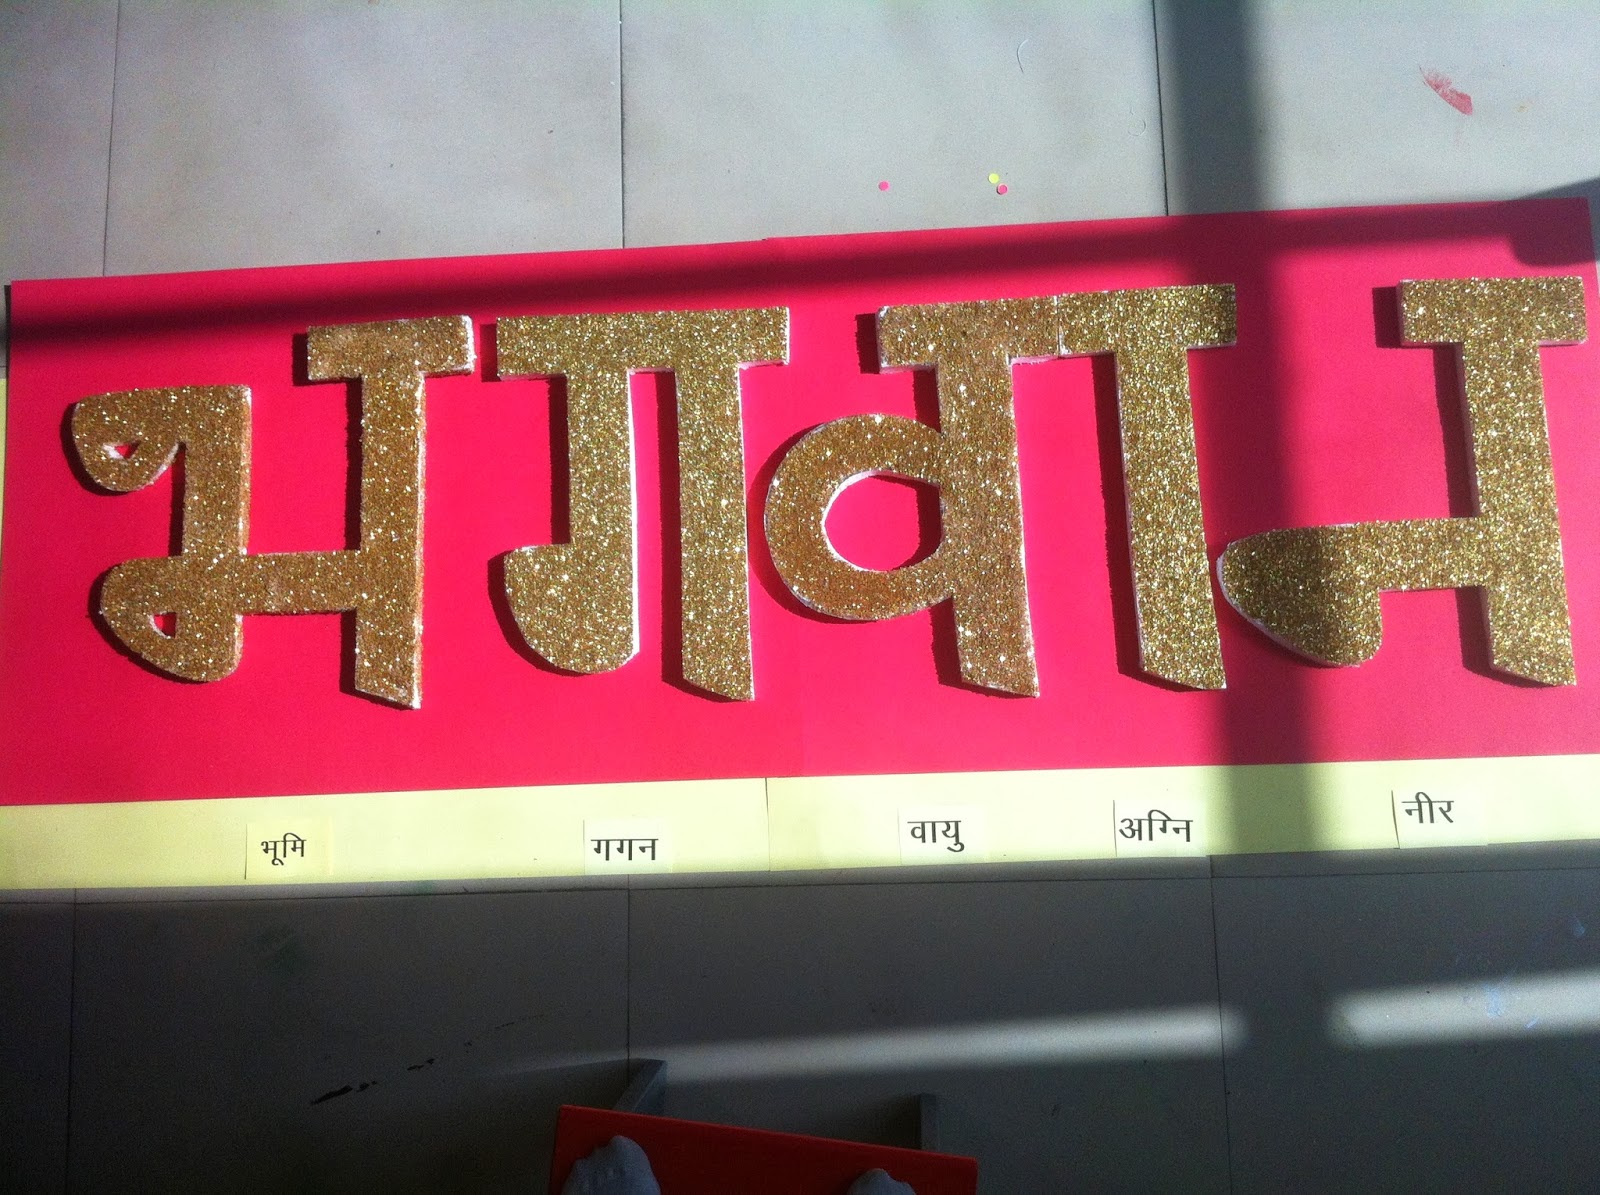 Learn These Bulletin Board Meaning In Hindi {Swypeout}